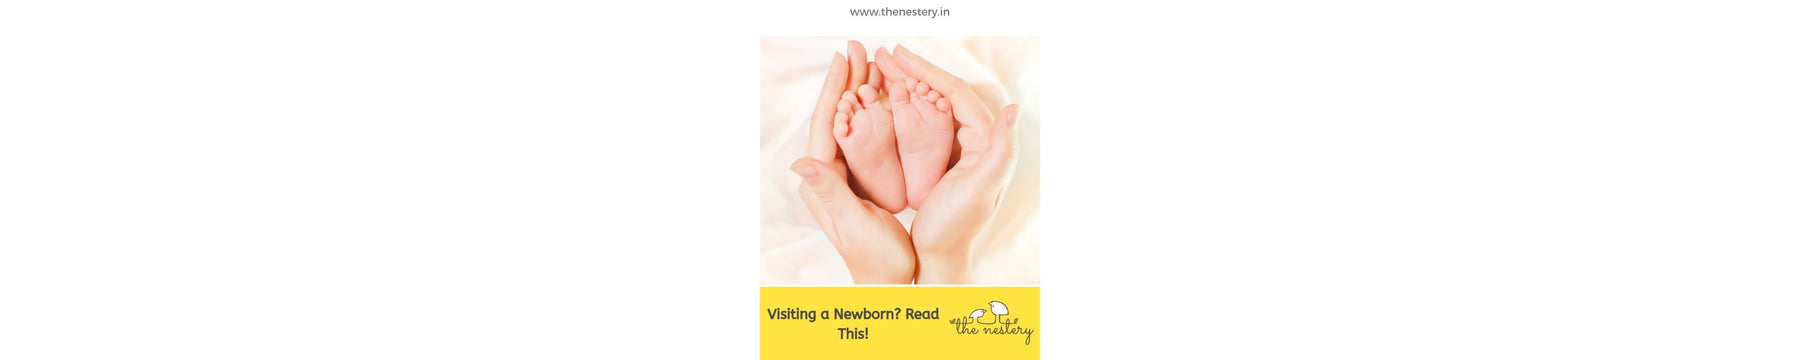 Visiting a Newborn? - Read this!